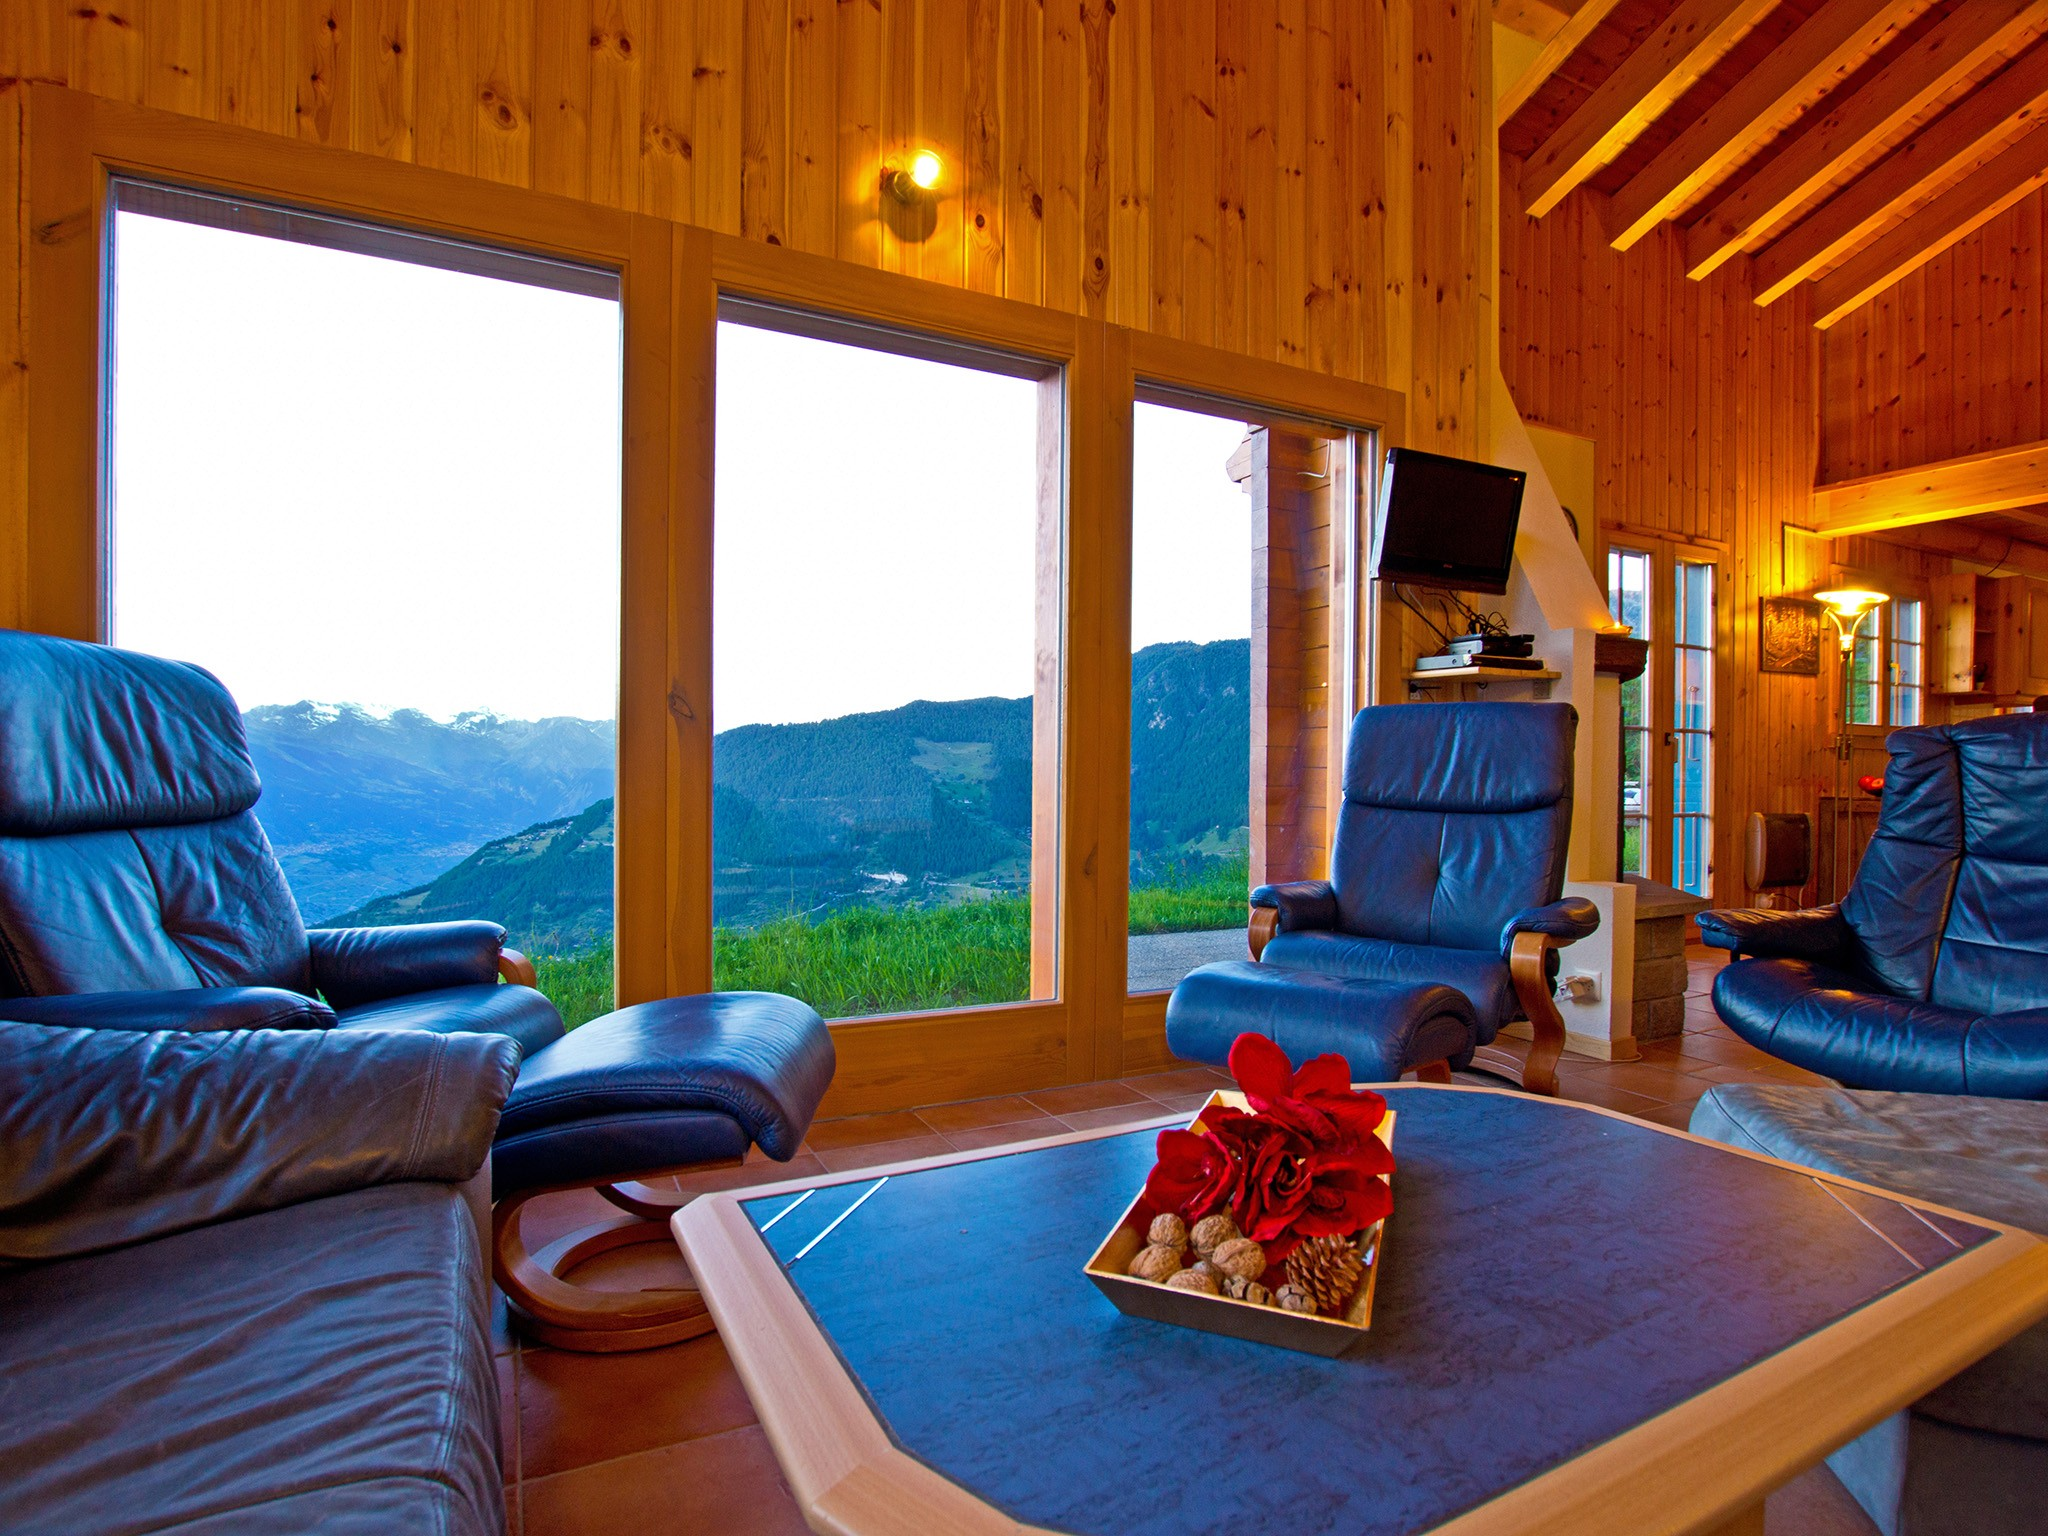 Chalet Alpina - living room